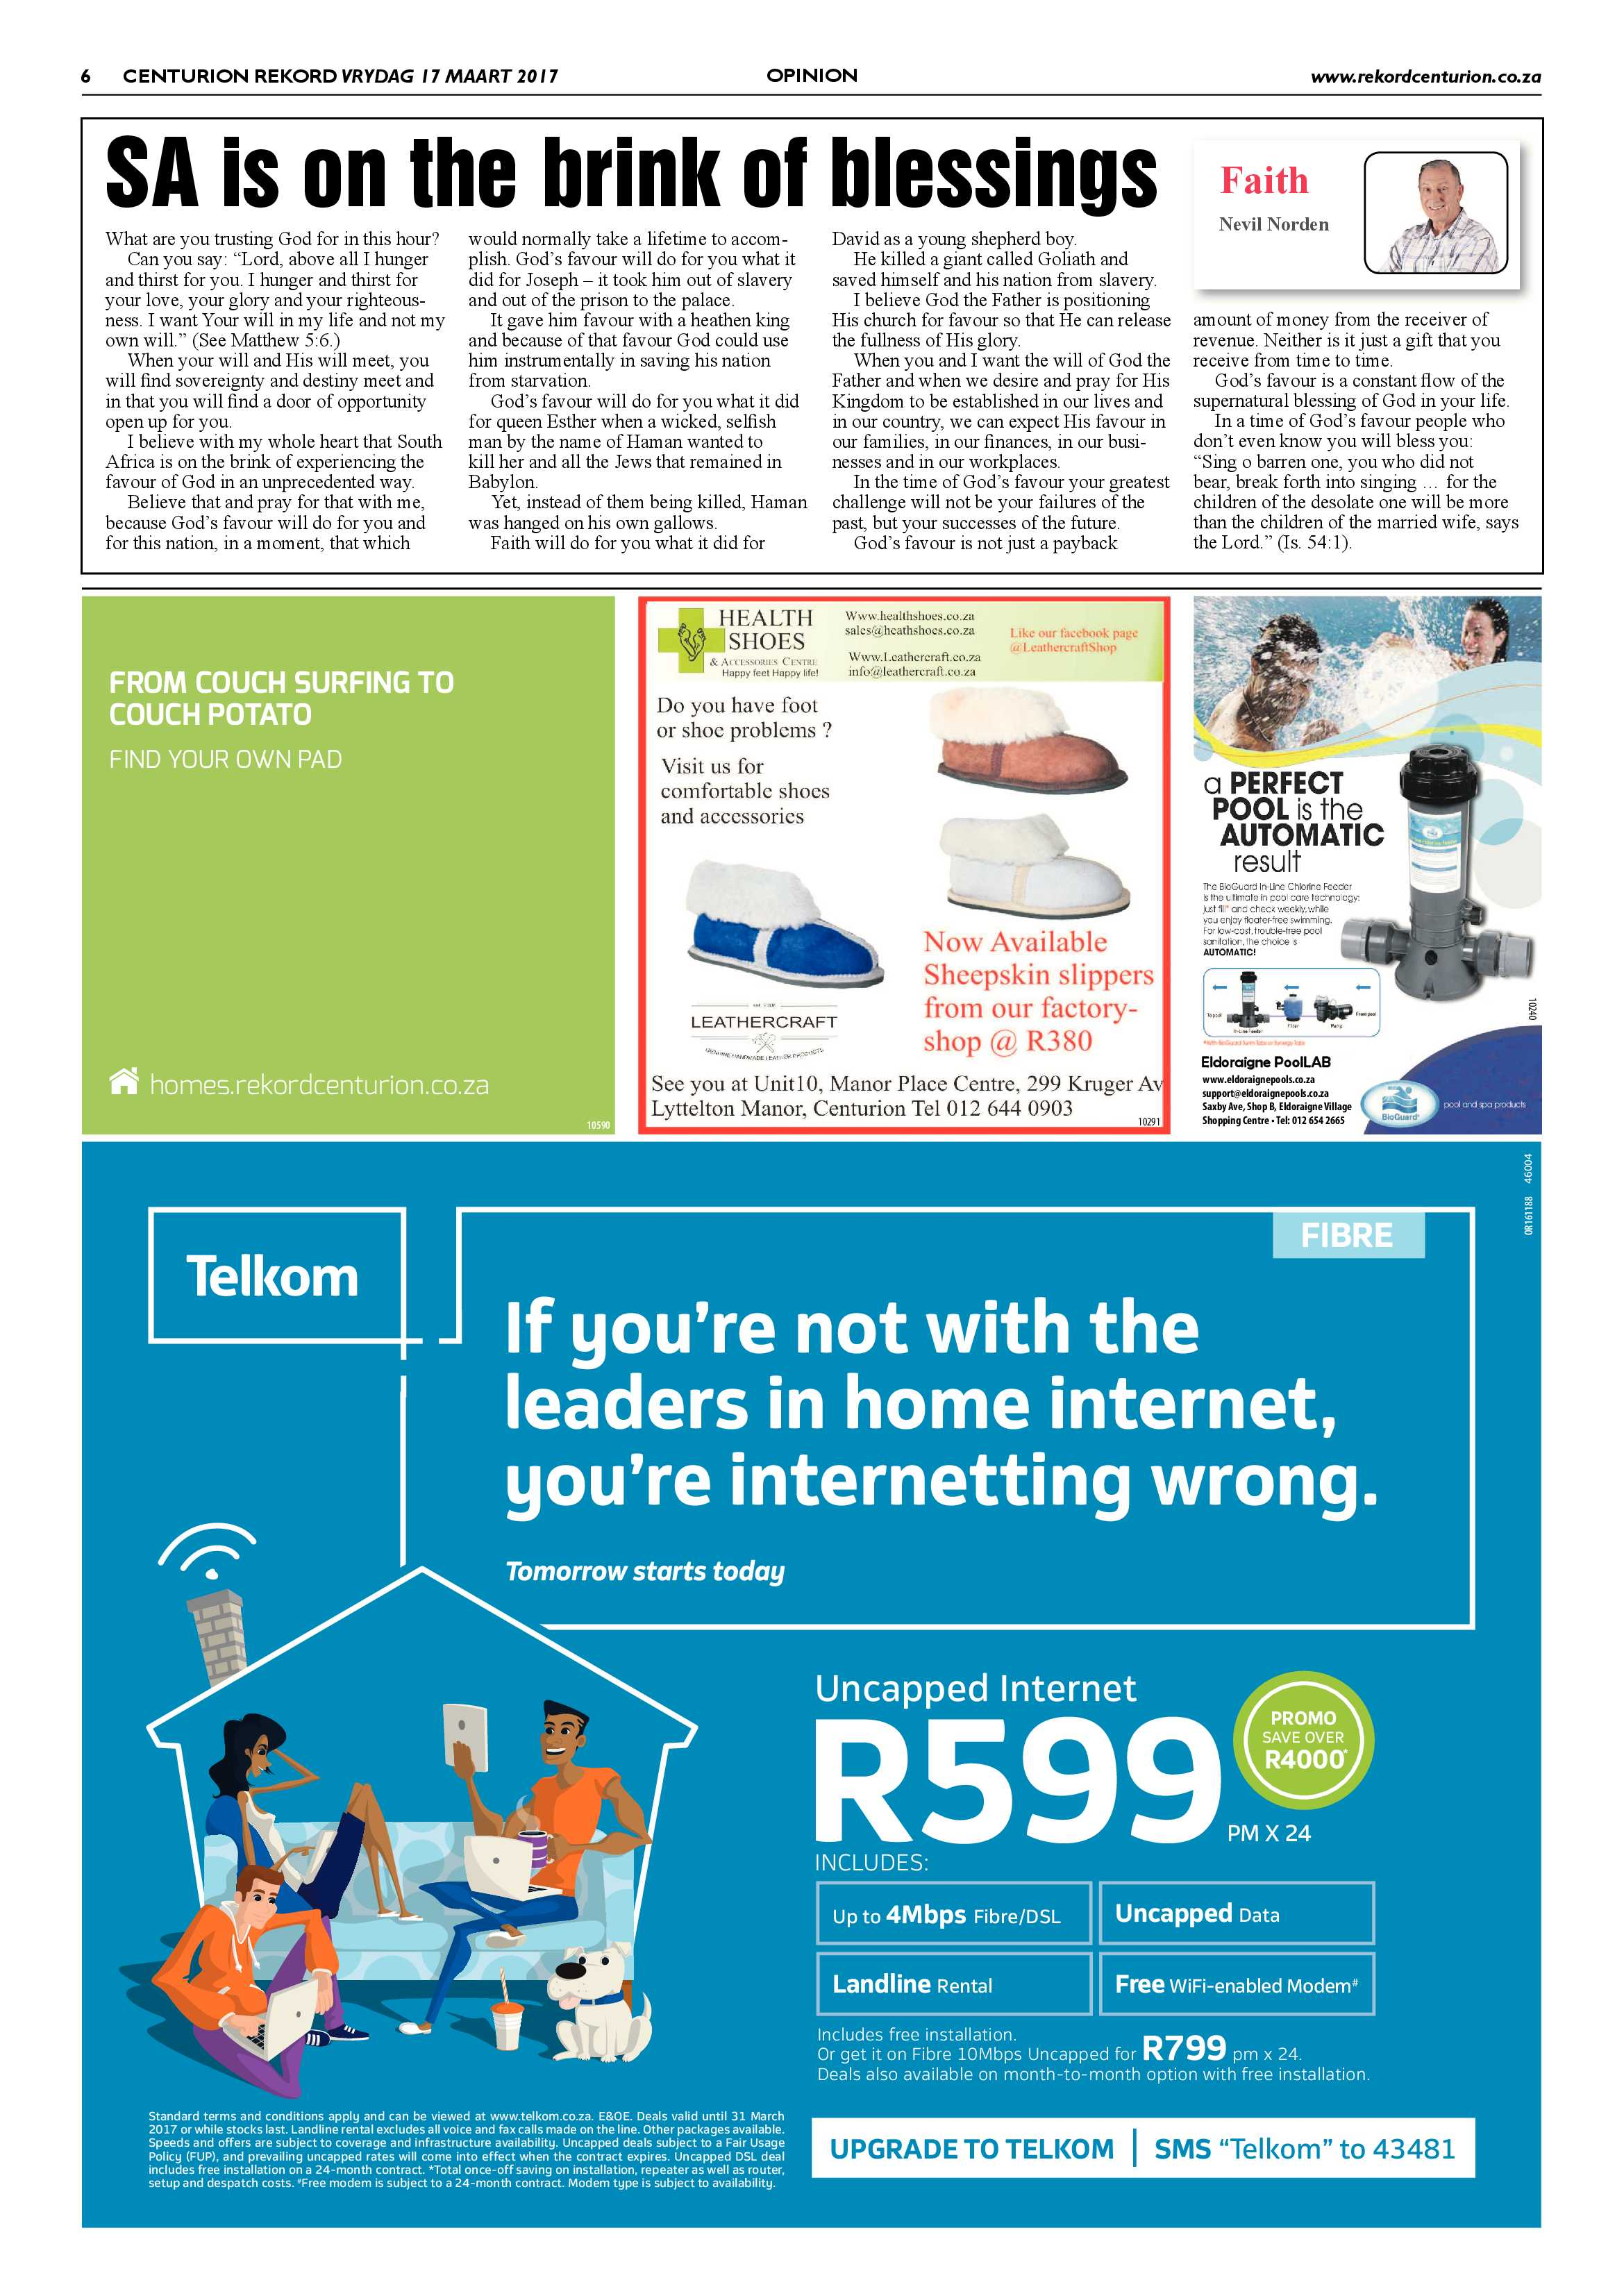 rekord-centurion-17-march-2017-epapers-page-6